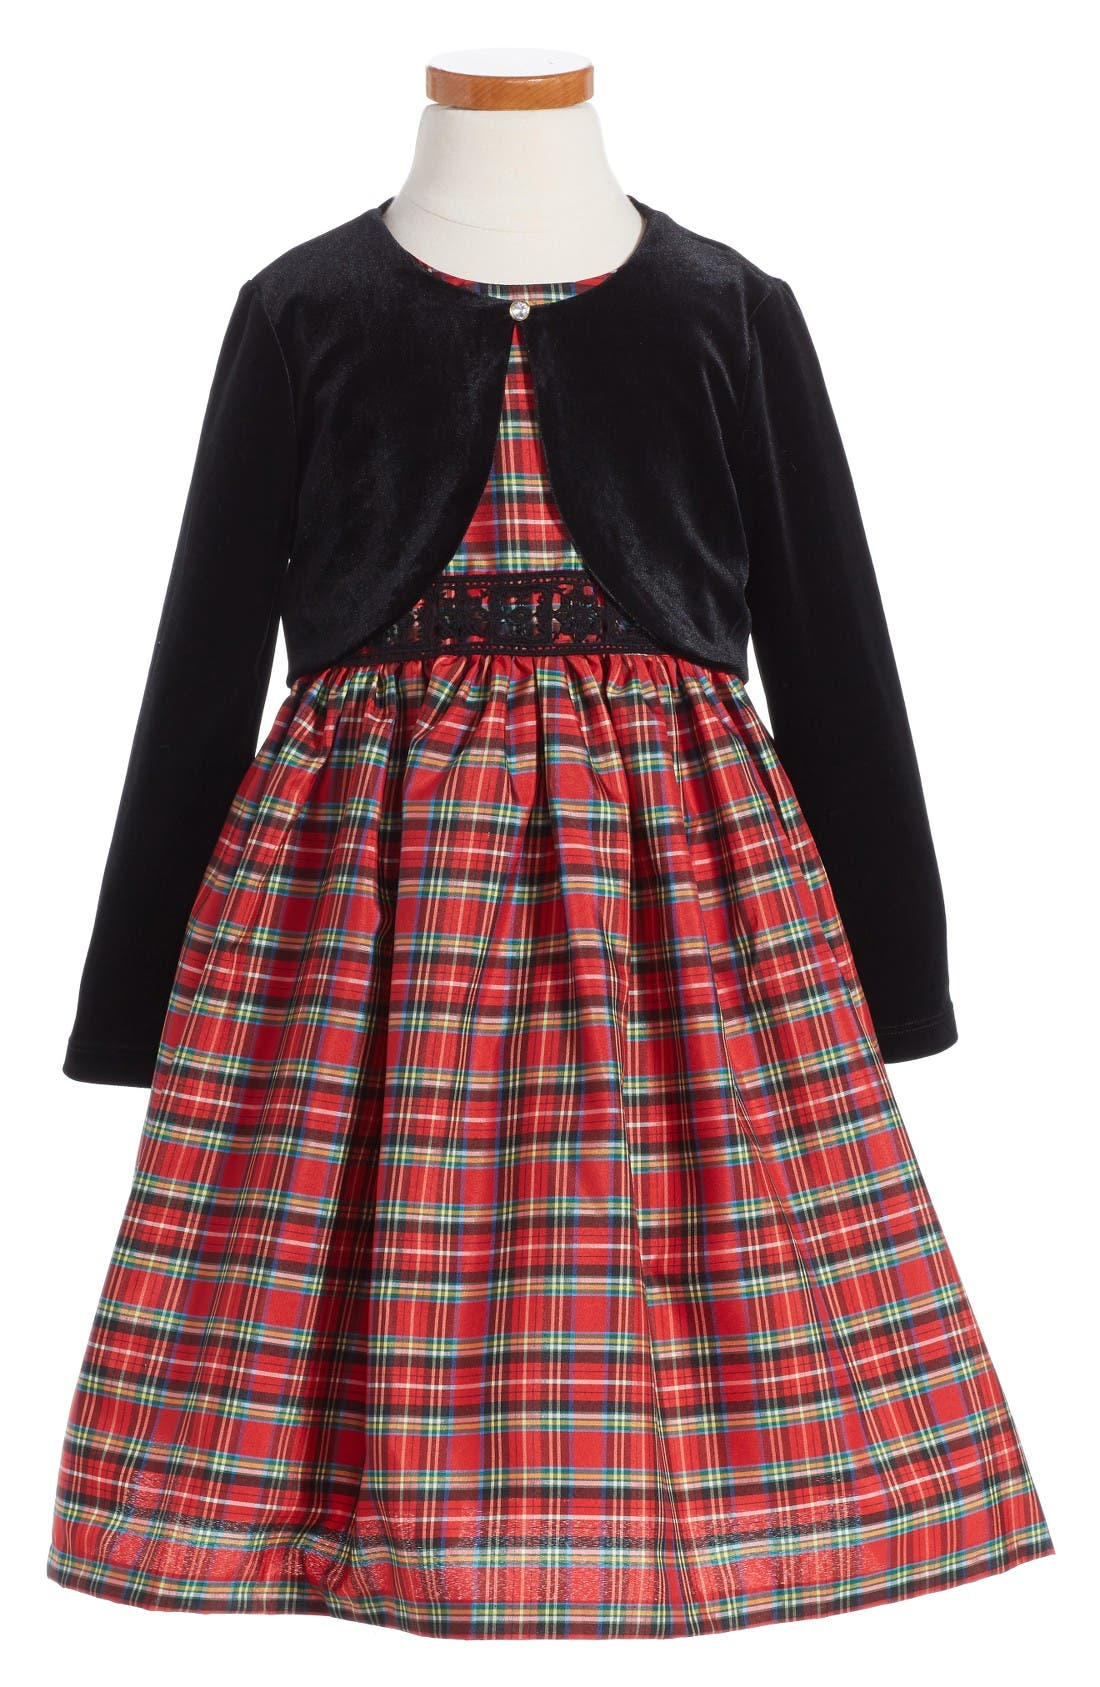 Alternate Image 1 Selected - Pippa & Julie Plaid Dress & Velvet Jacket (Toddler Girls, Little Girls & Big Girls)